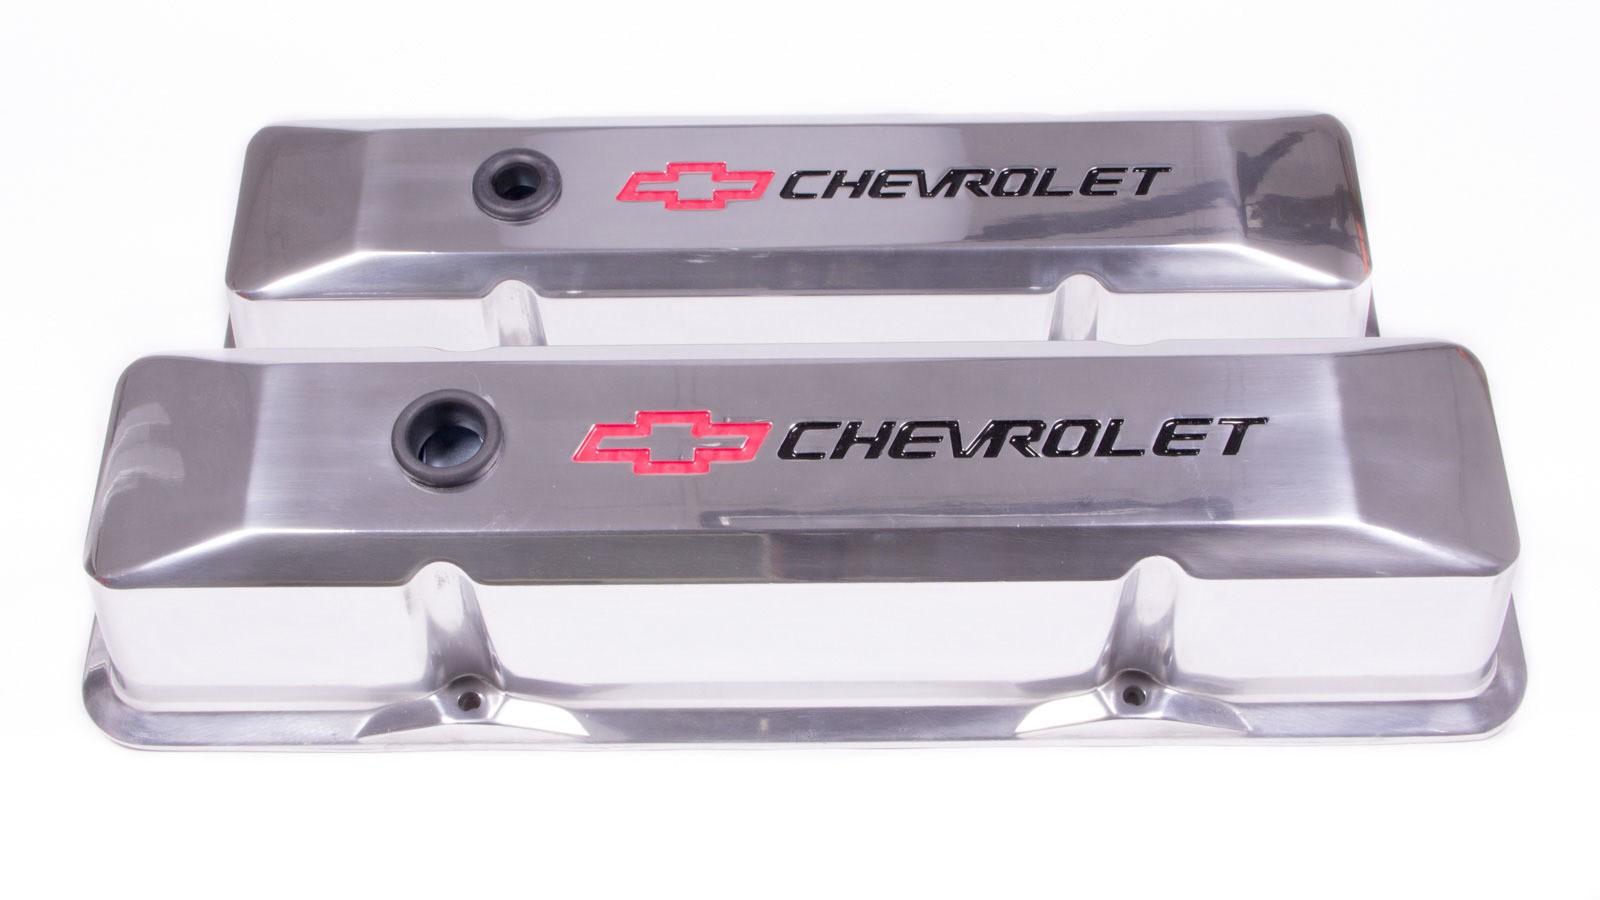 Proform 141-108 Valve Cover, Die-Cast, Tall, Baffled, Breather Hole, Recessed Chevrolet Bowtie Logo, Aluminum, Polished, Small Block Chevy, Pair